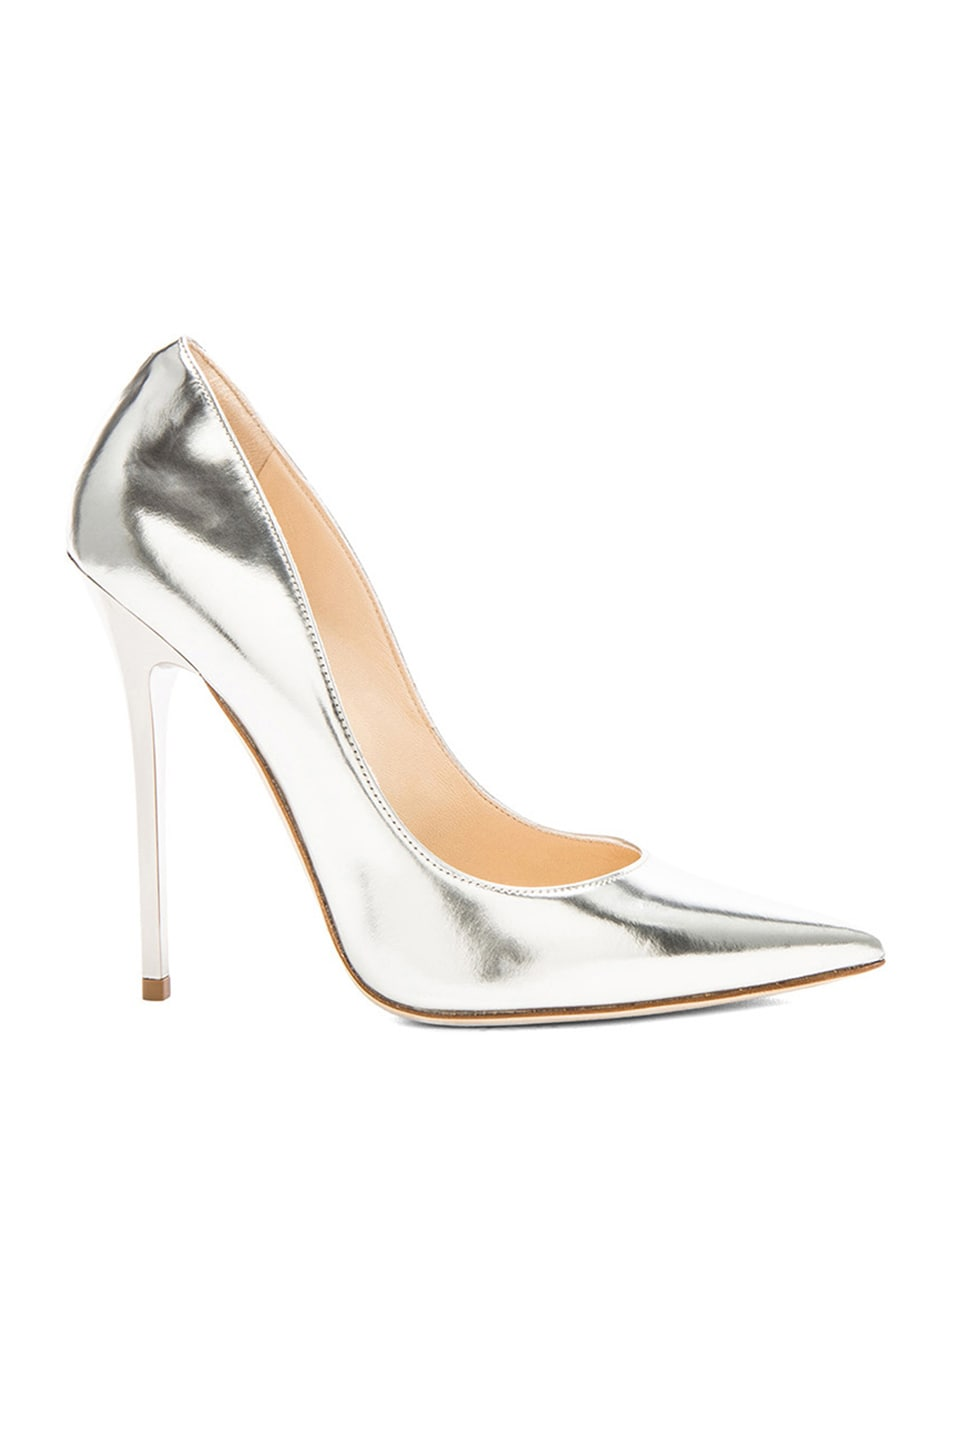 Image 1 of Jimmy Choo Anouk Leather Pumps in Silver